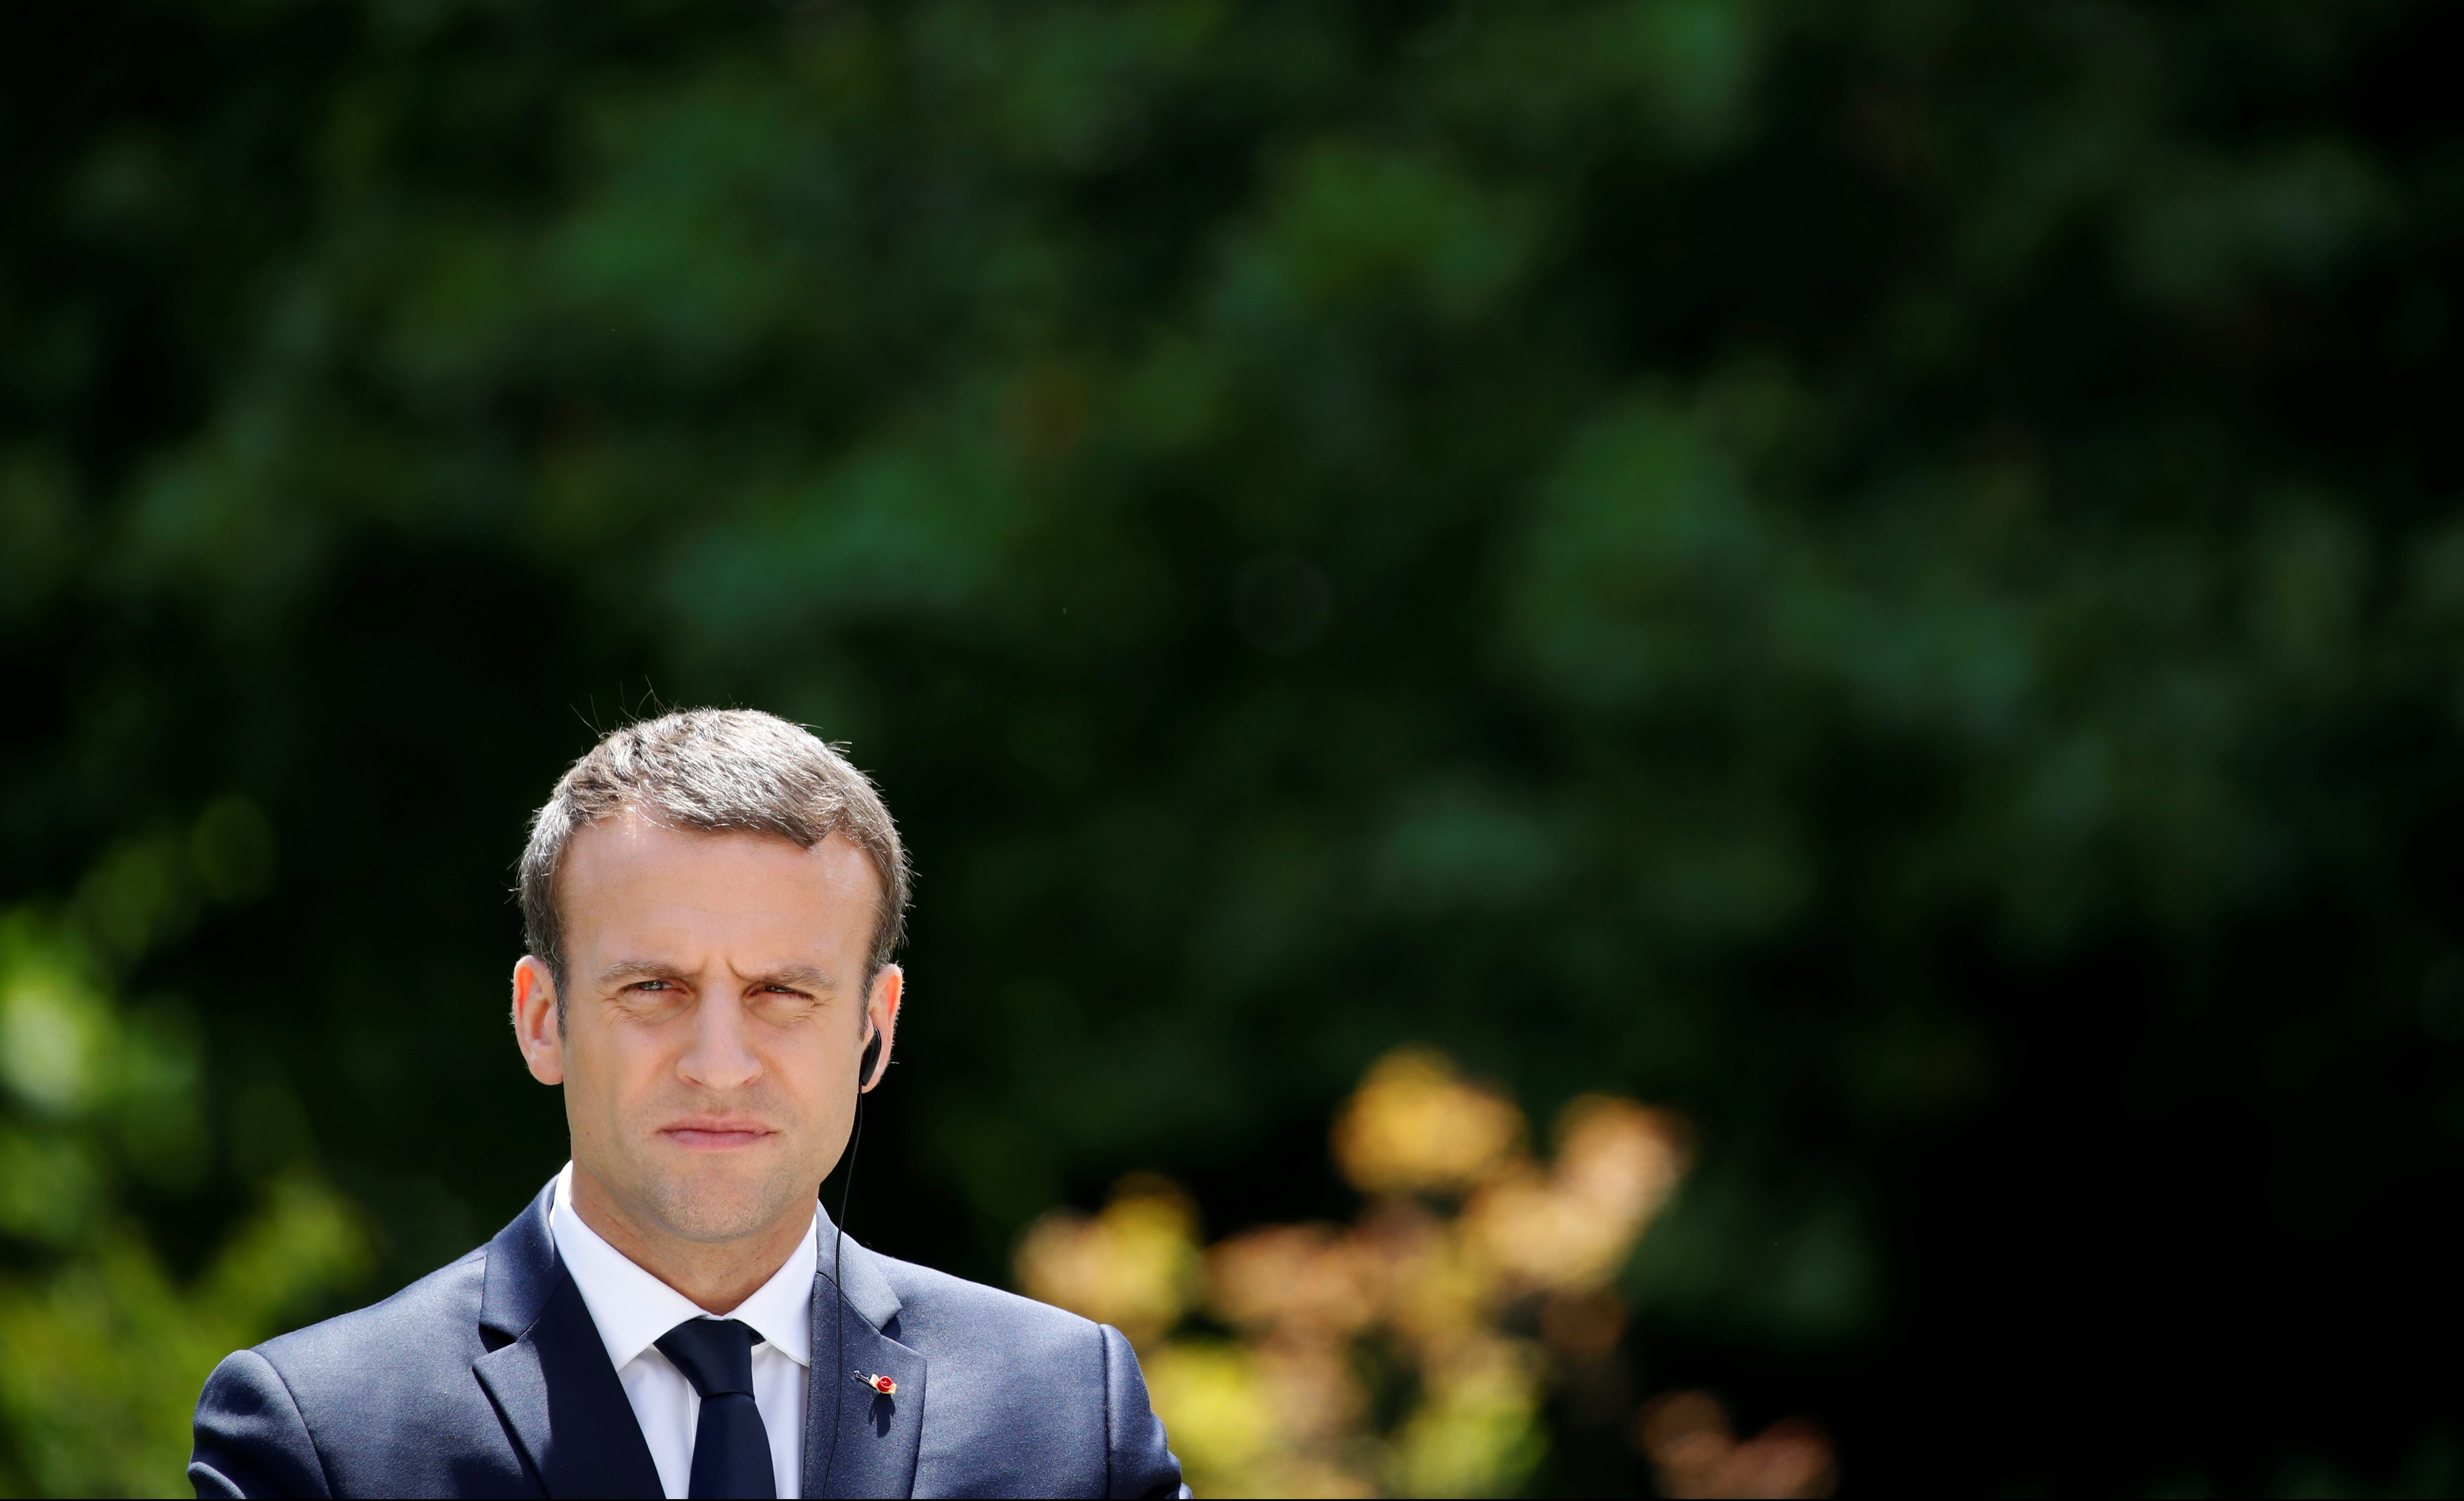 French President Emmanuel Macron is seen during a news conference at the Elysee Palace in Paris.